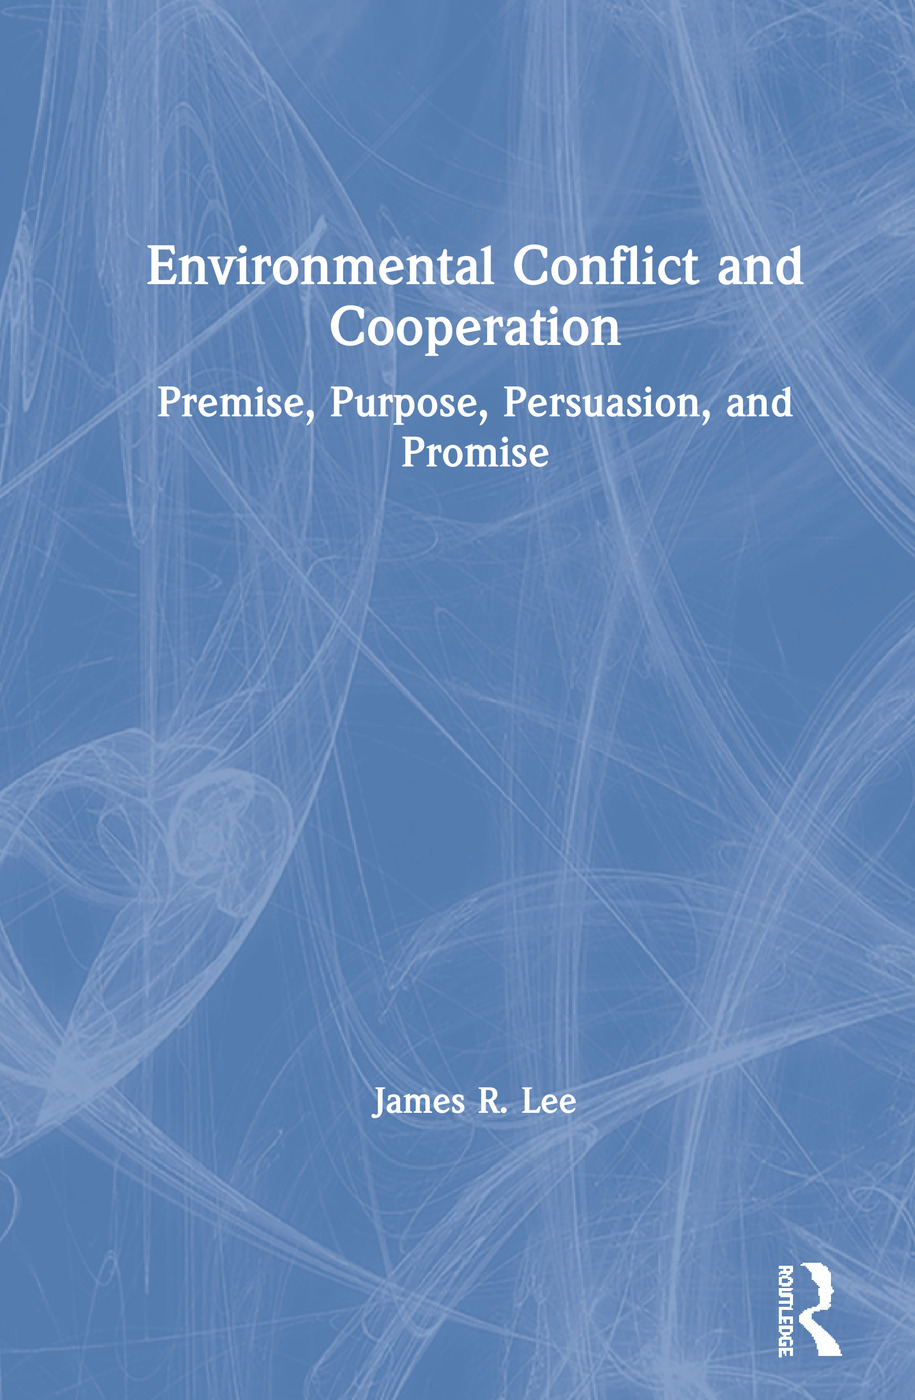 Environmental Conflict and Cooperation: Premise, Purpose, Persuasion, and Promise book cover